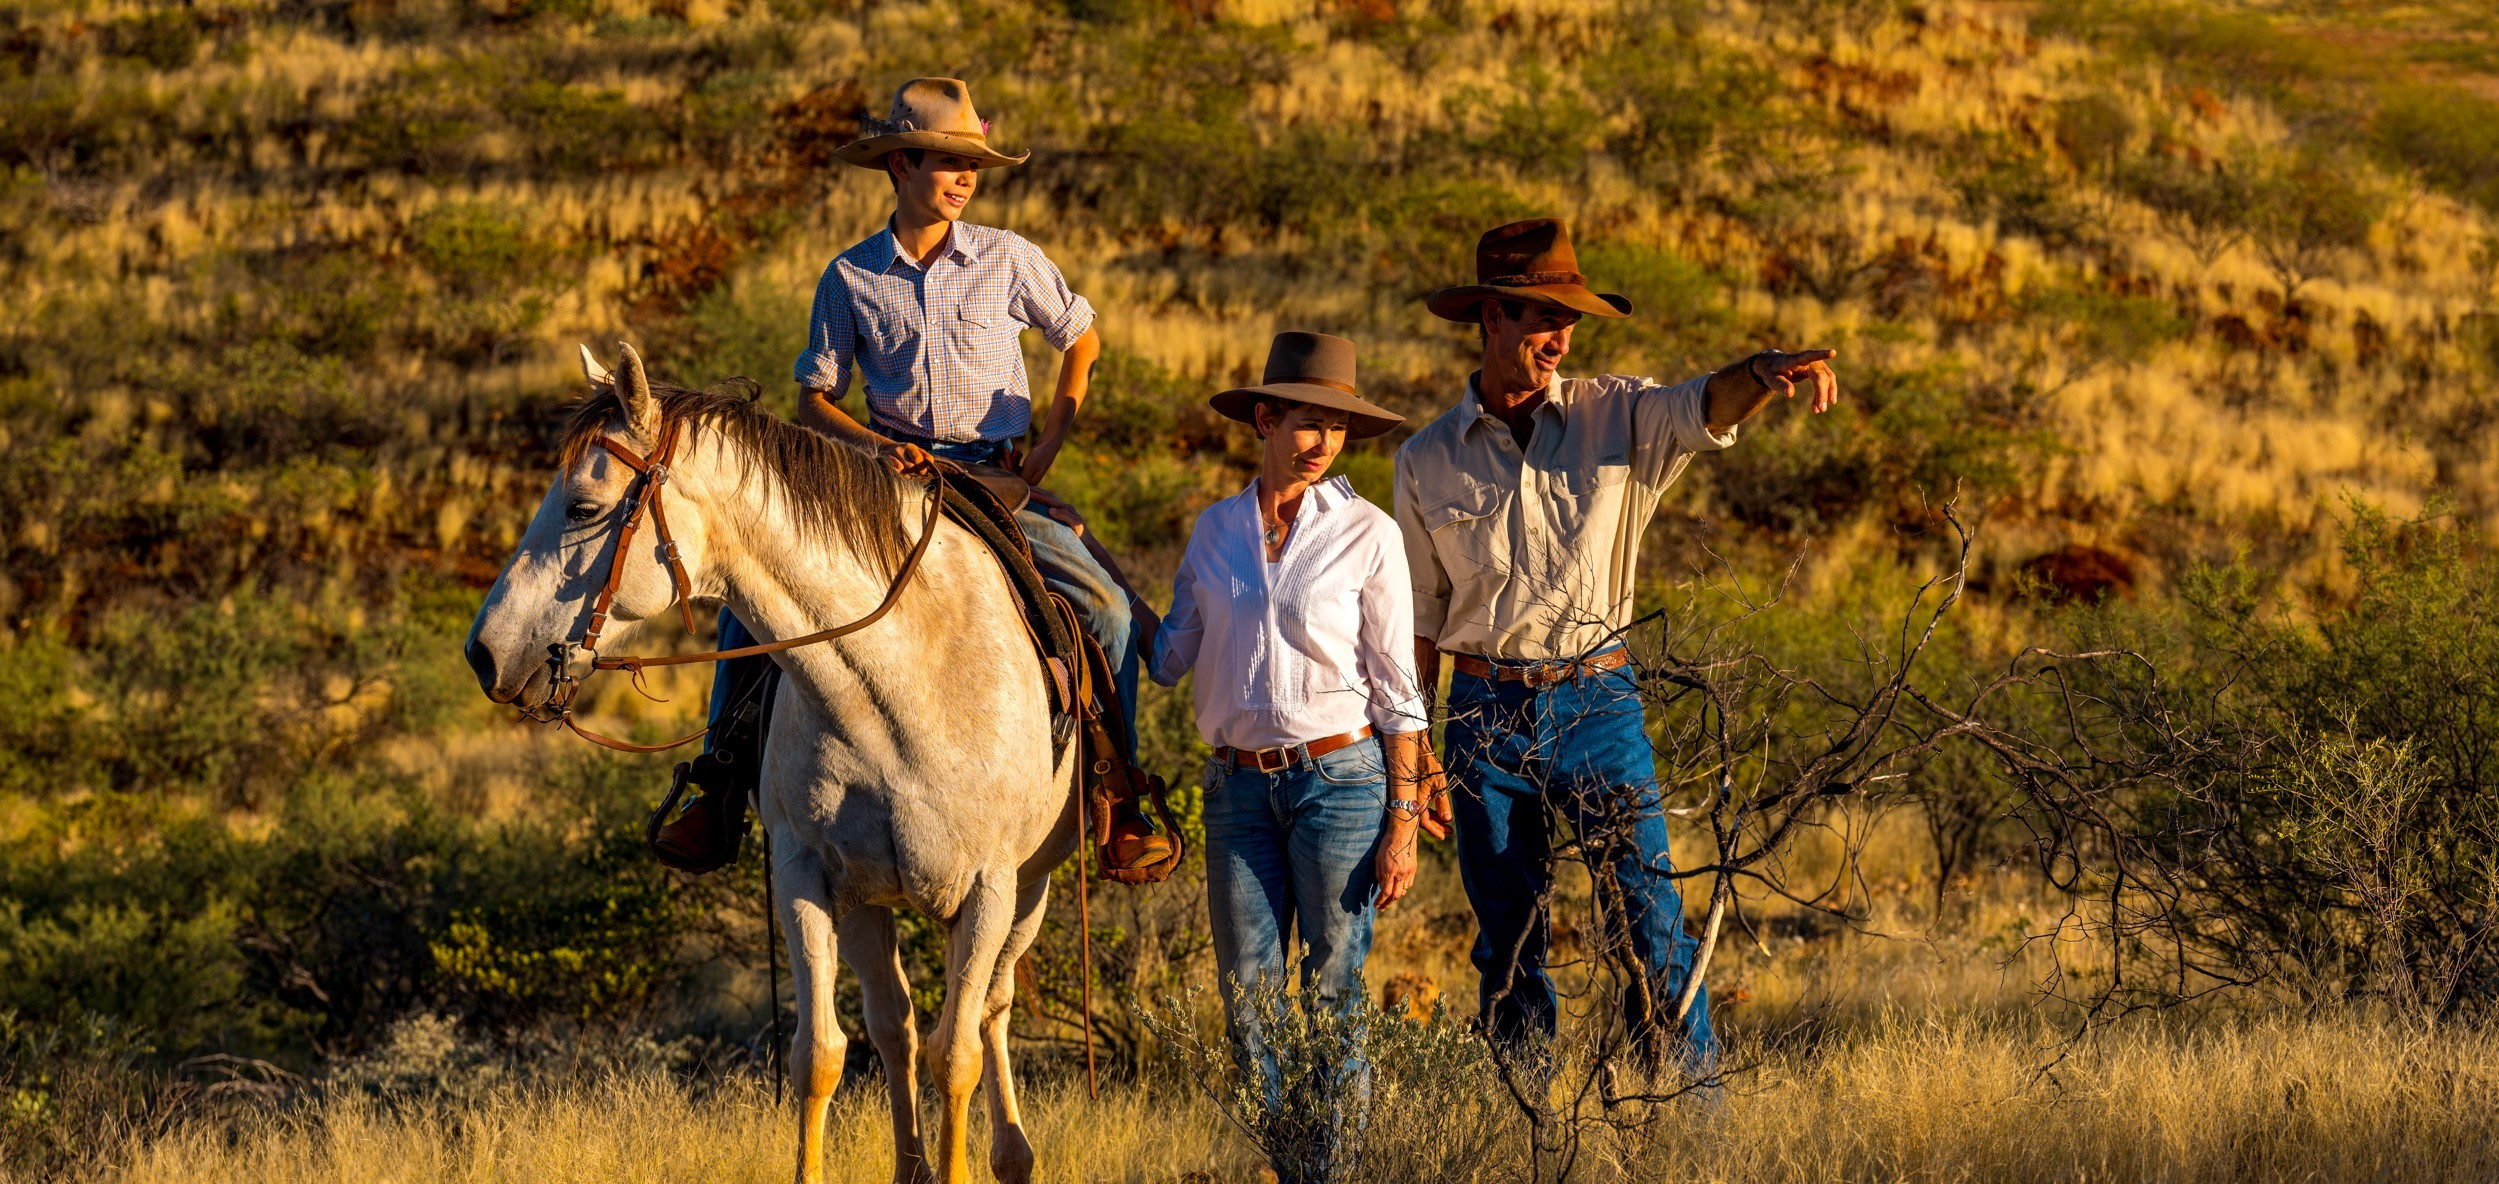 A stunning Outback story in the West Weekend magazine